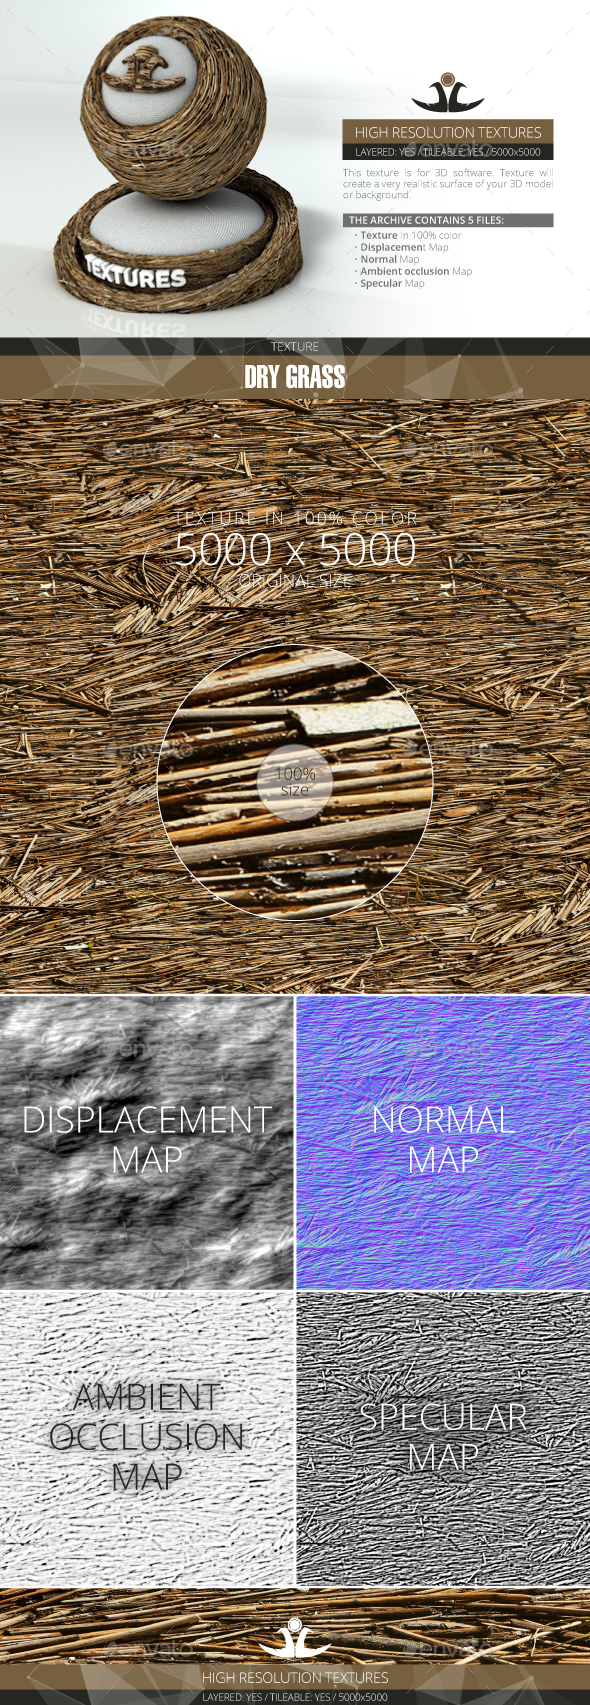 Dry Grass 4 - 3DOcean Item for Sale